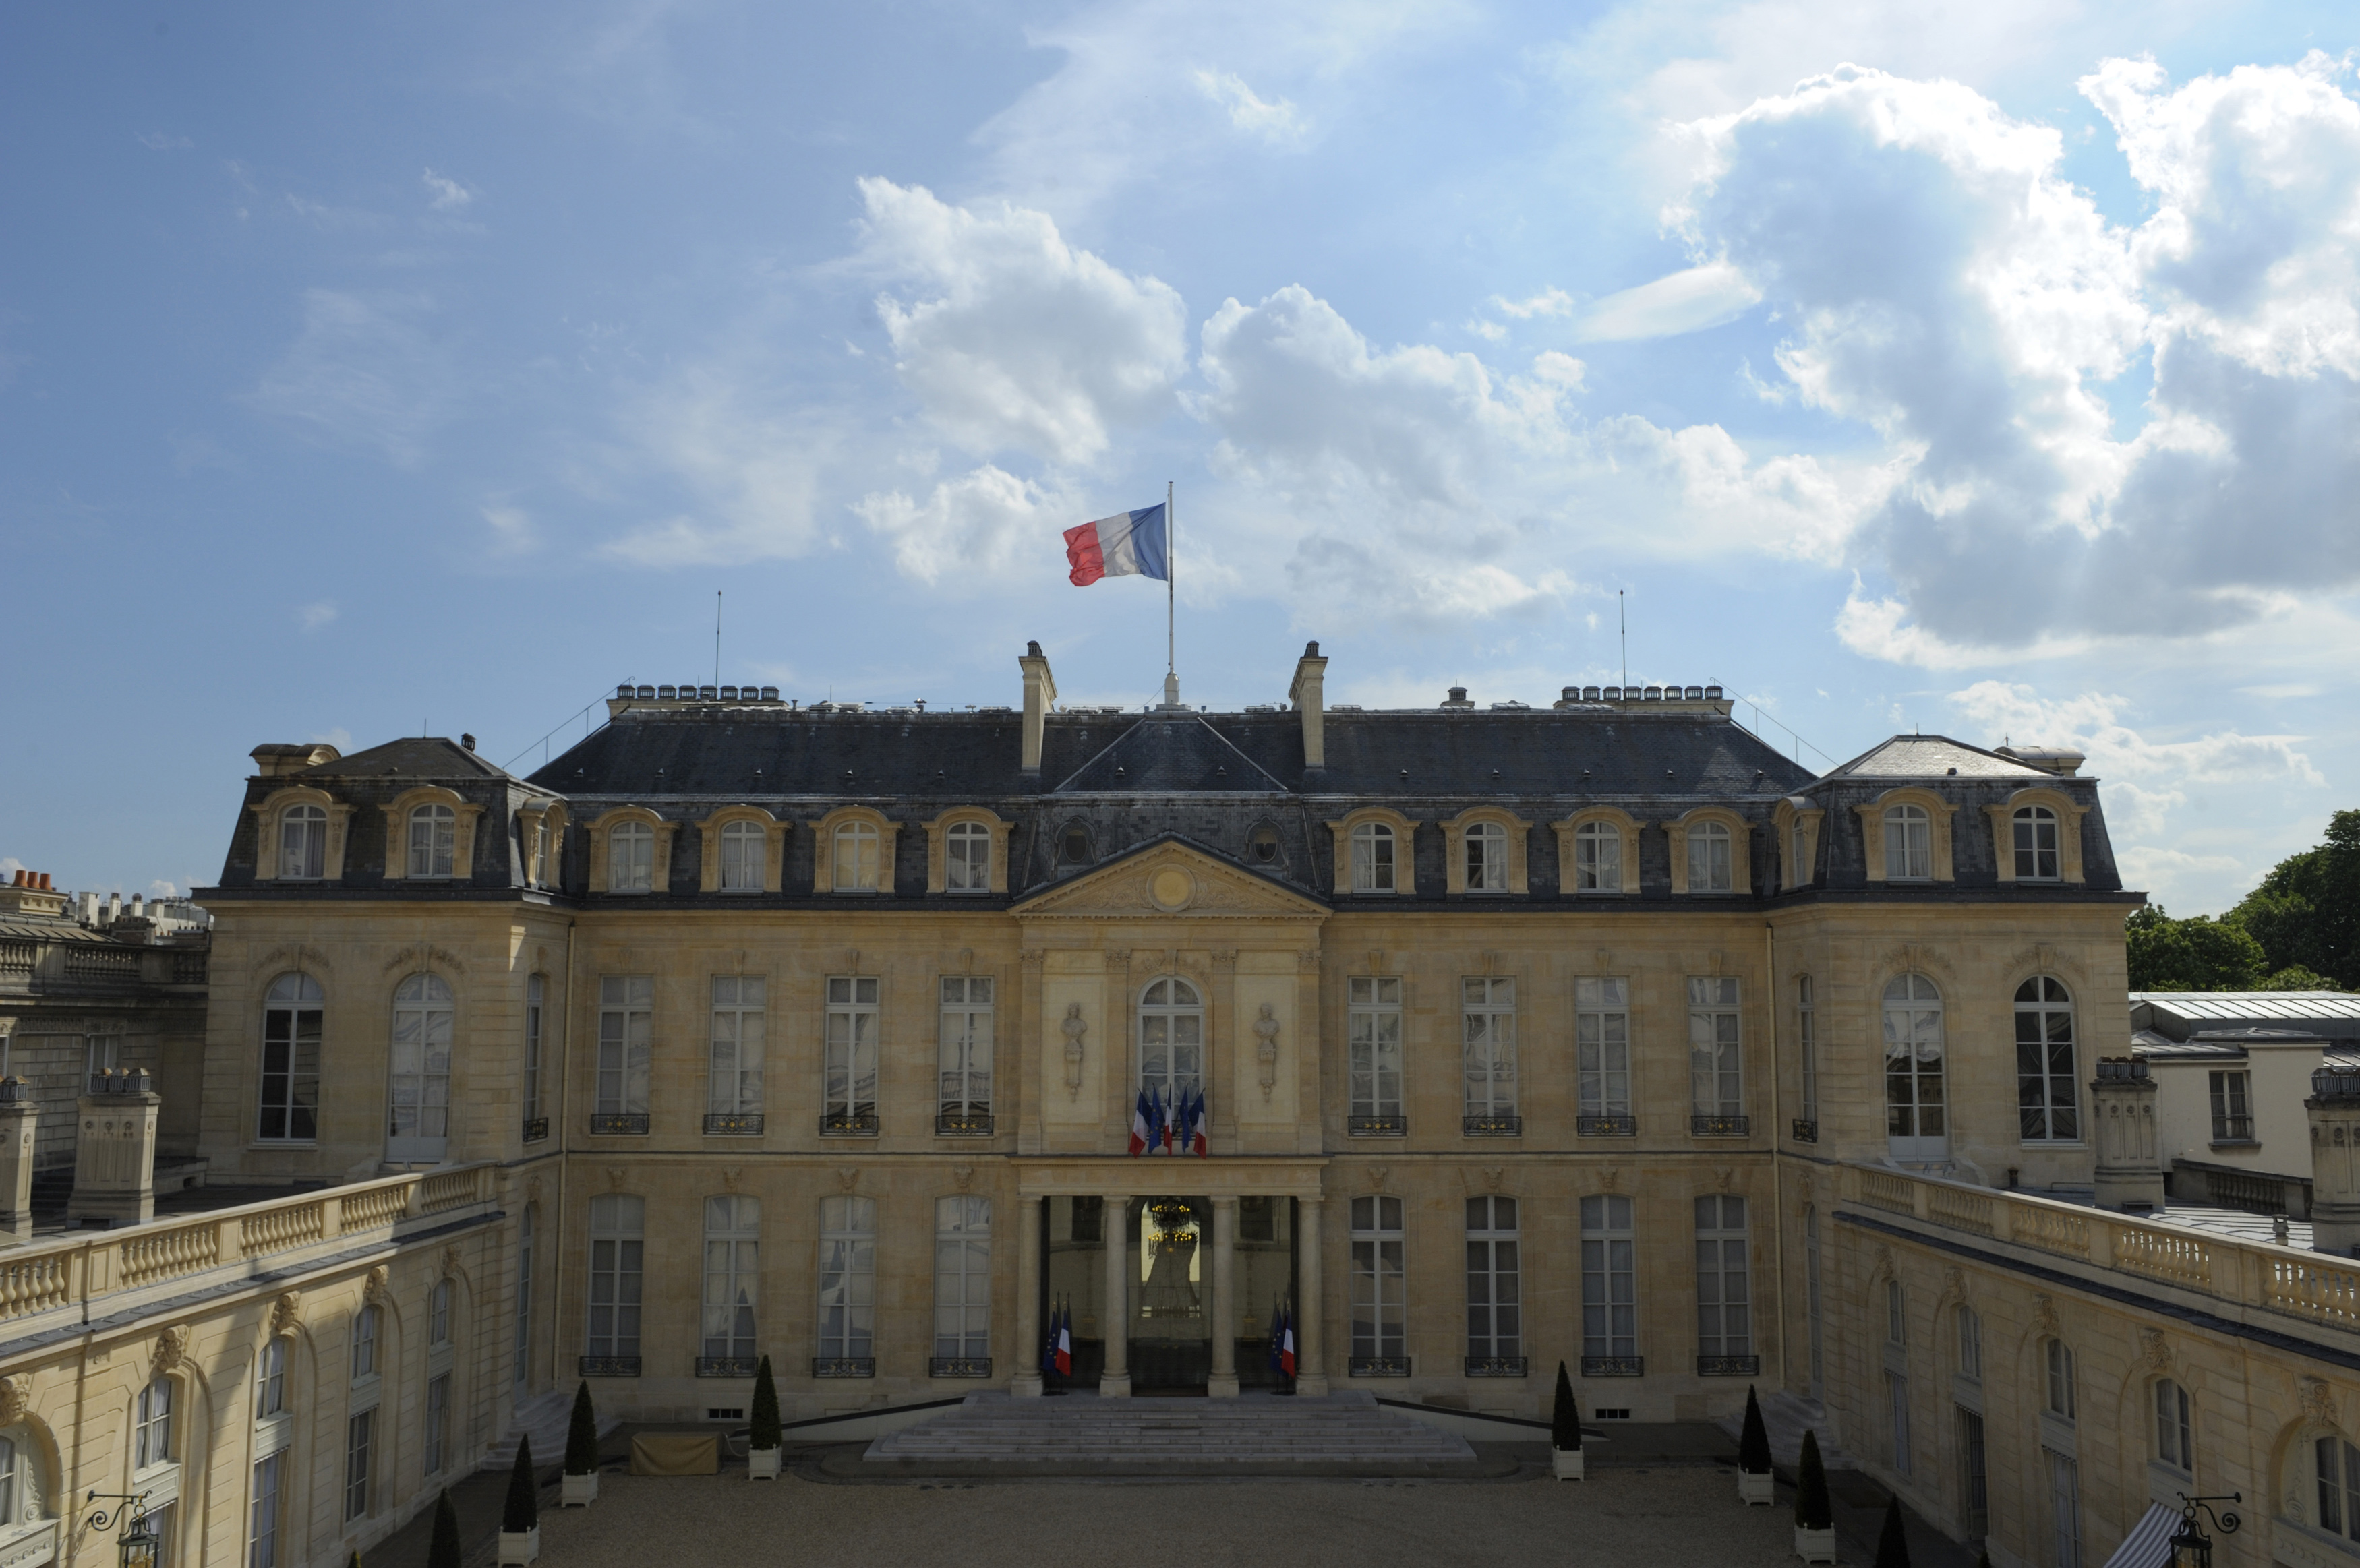 General view of the Elysee Palace, the President's official residence, is seen in Paris May 3, 2012. REUTERS/Philippe Wojazer